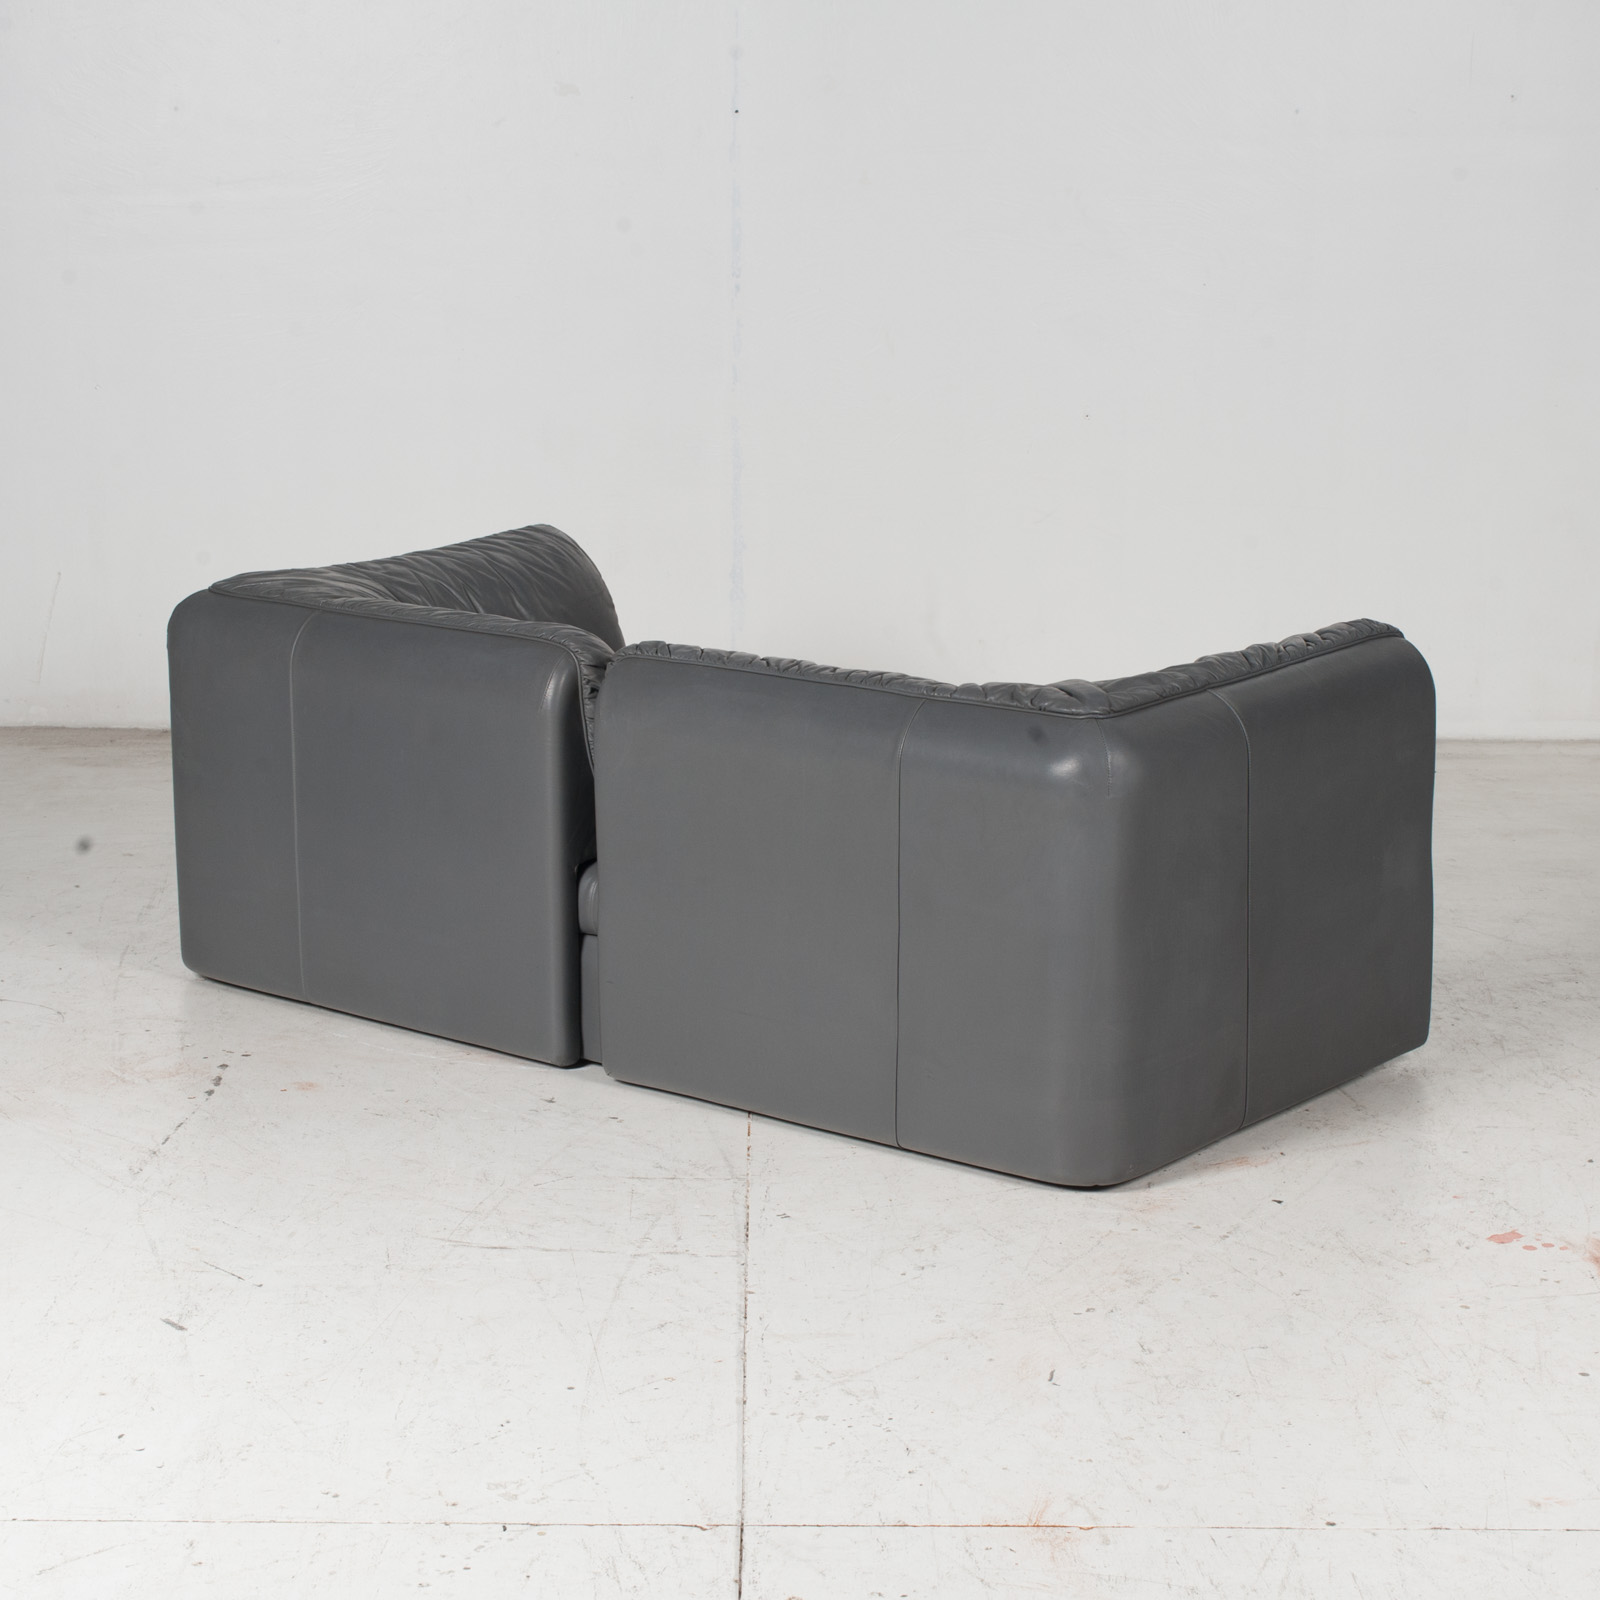 Model Pacific 2.5 Seat Sofa By Cini Boeri For Arflex In Grey Leather, 1980s, Italy 8